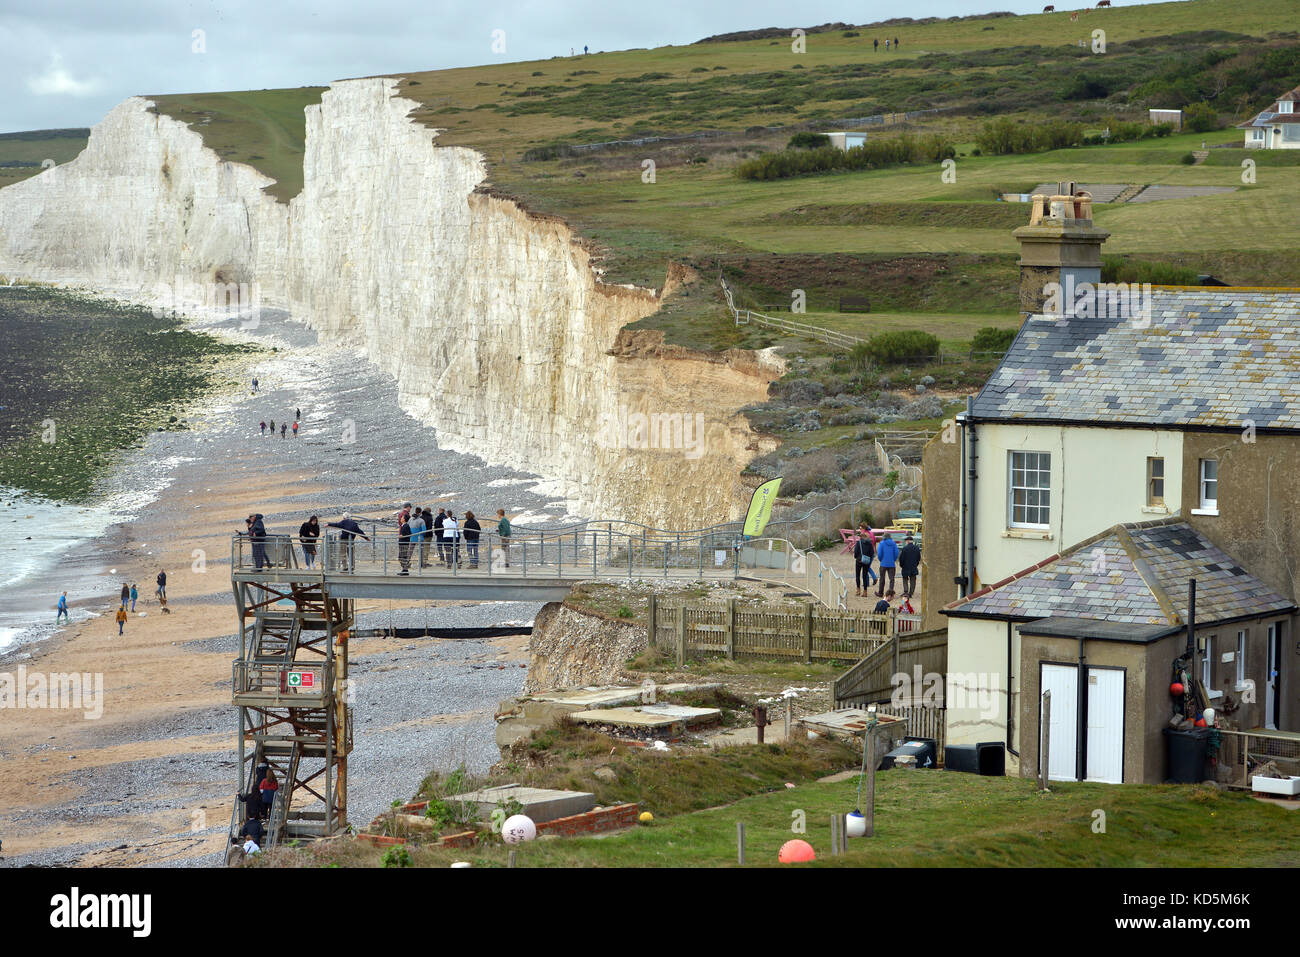 66f10234e8f8 Tourists get close to the edge of the crumbling chalk cliffs at Birlng Gap